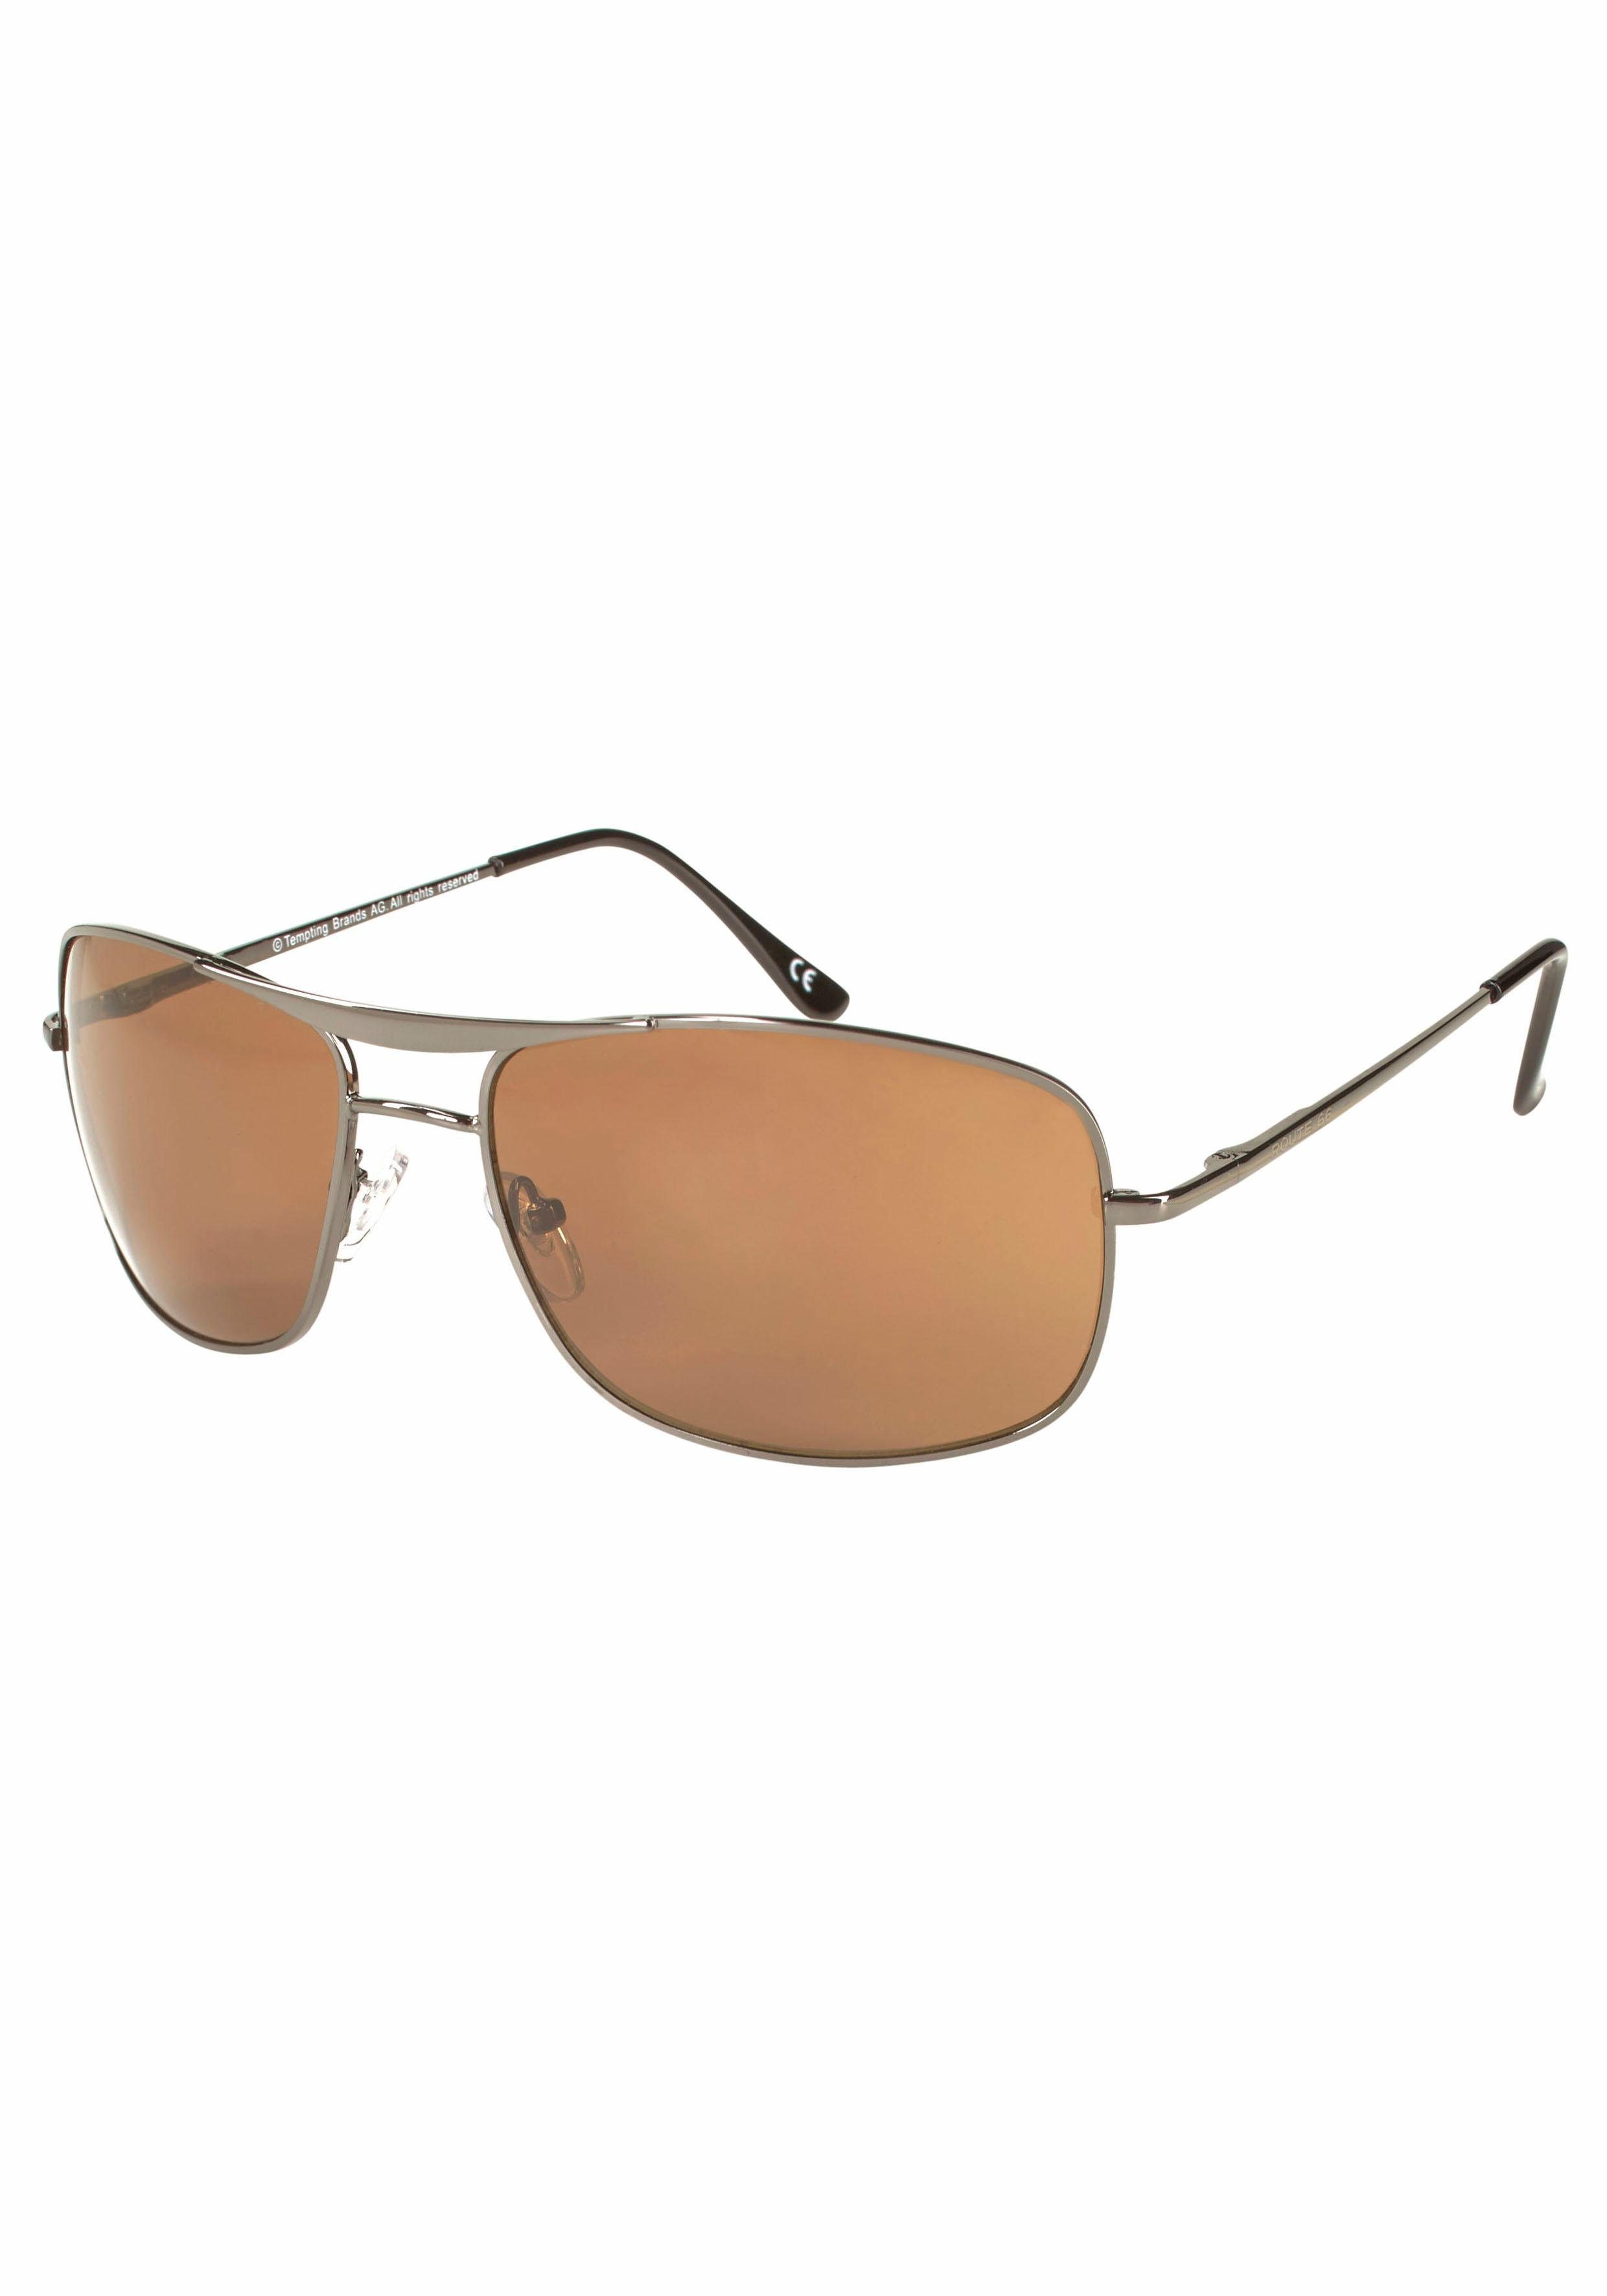 ROUTE 66 Feel the Freedom Eyewear Sonnenbrille mit doppeltem Nasensteg